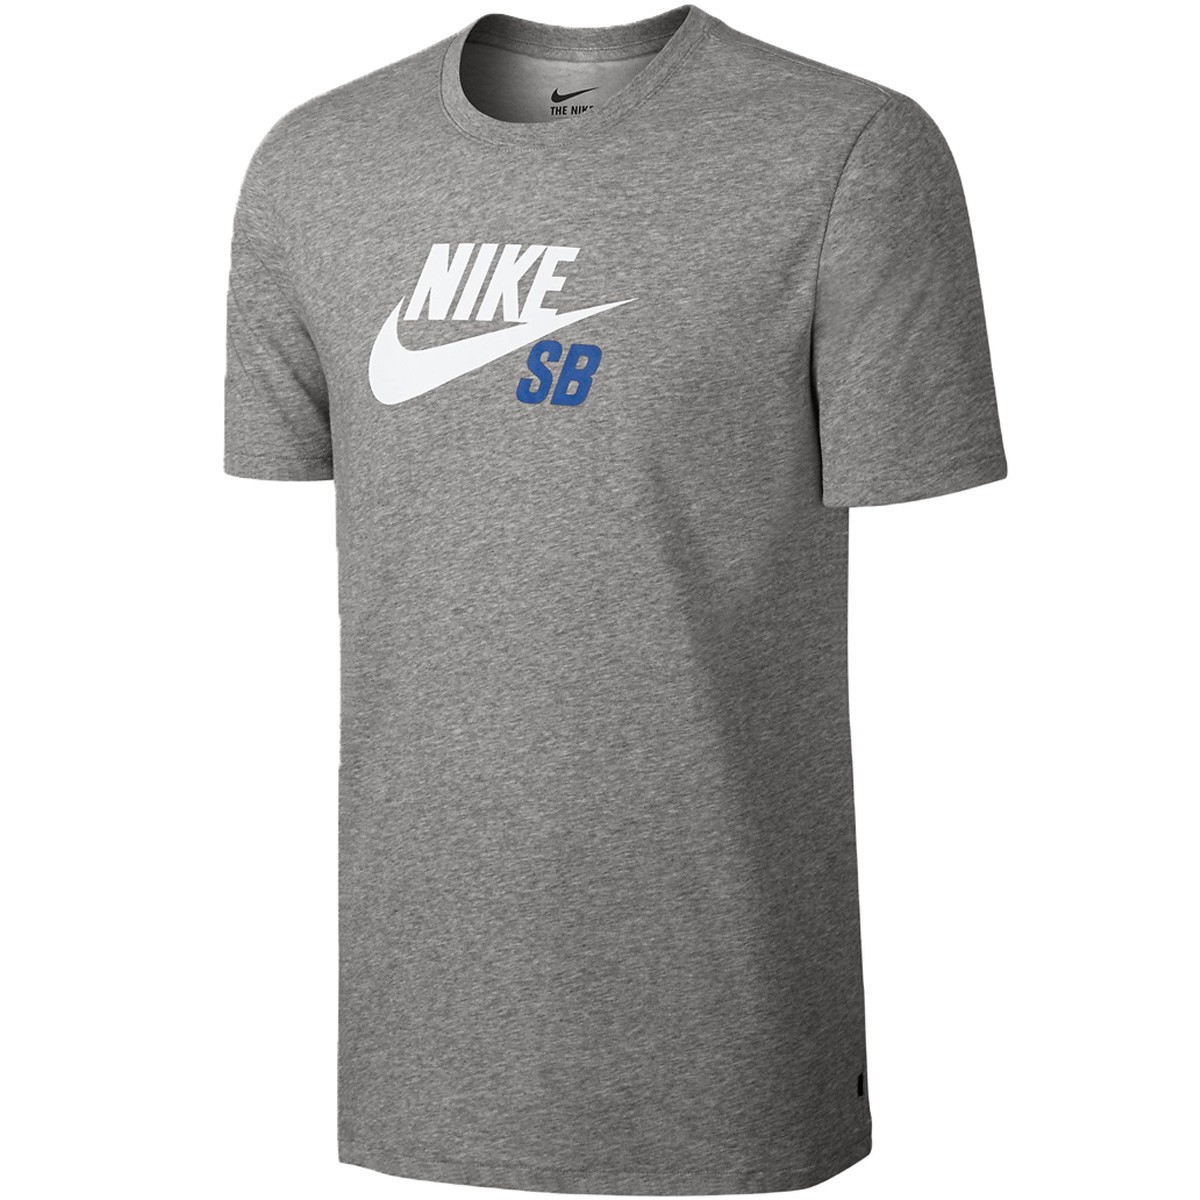 Nike SB Dri-FIT Logo T-Shirt Boys Dark Grey Heather